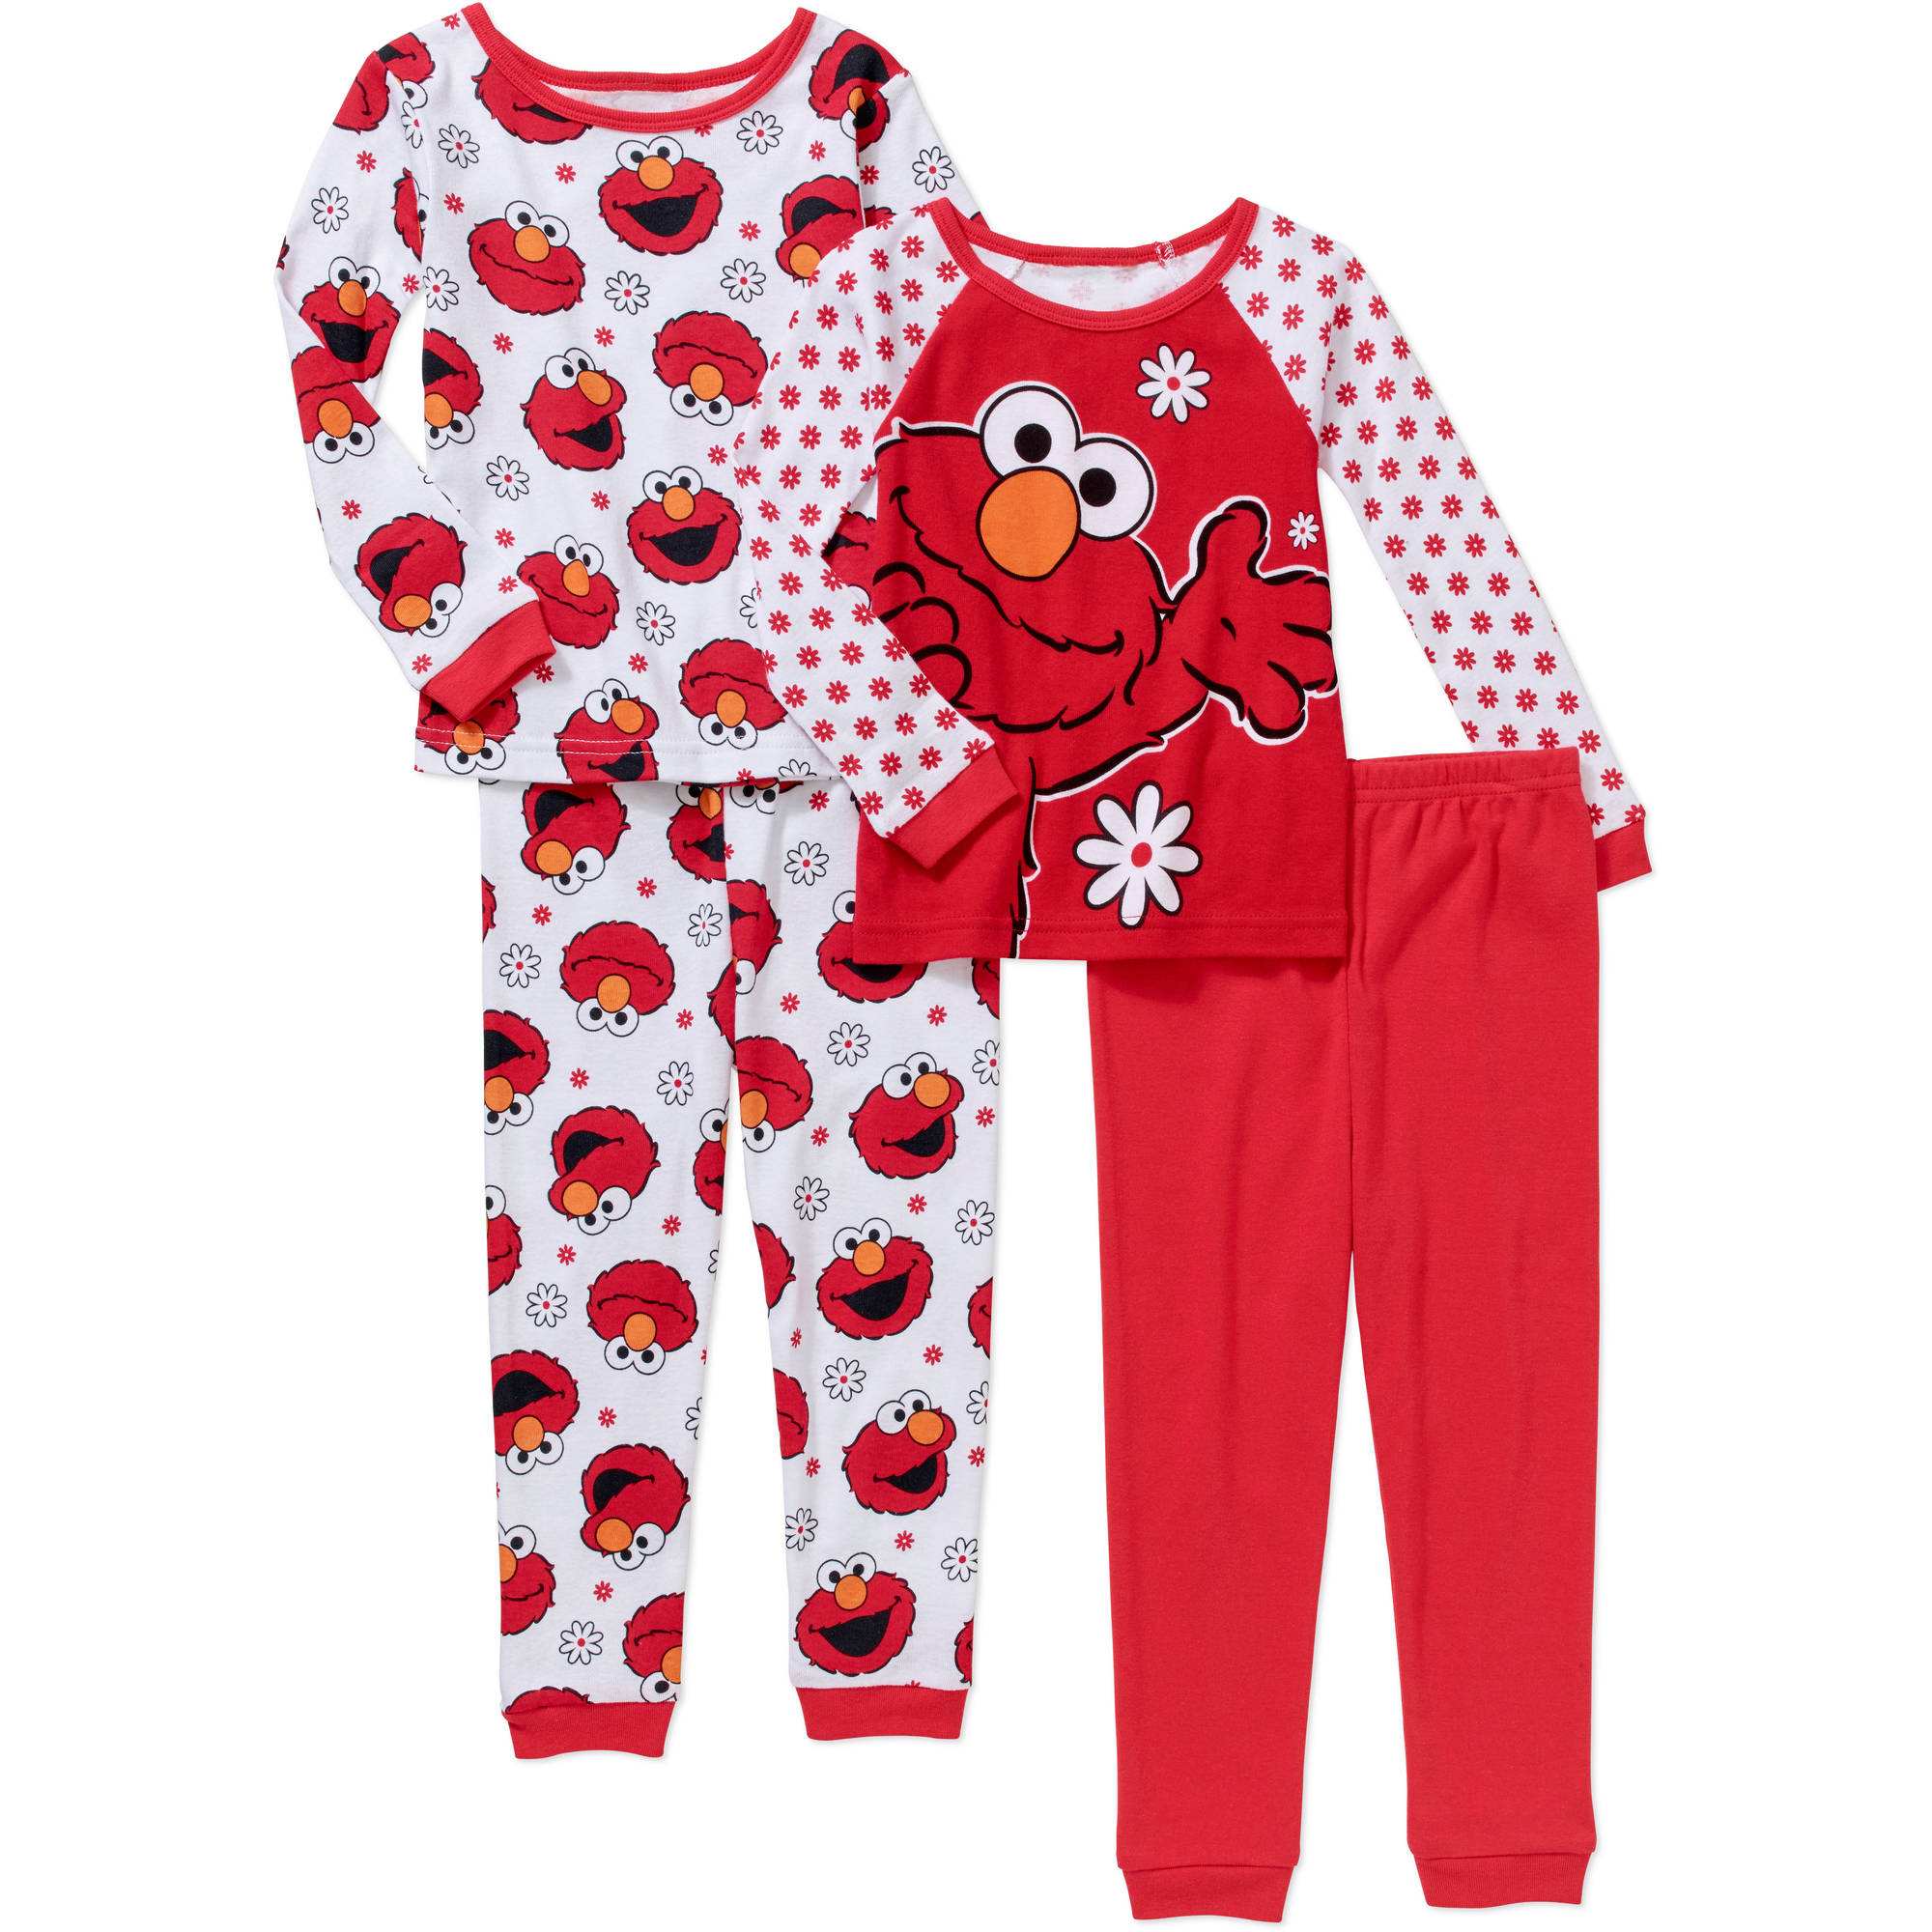 Sesame Street Elmo Baby Toddler Girl Cotton Tight-Fit Pajamas, 4-Piece Mix and Match Set